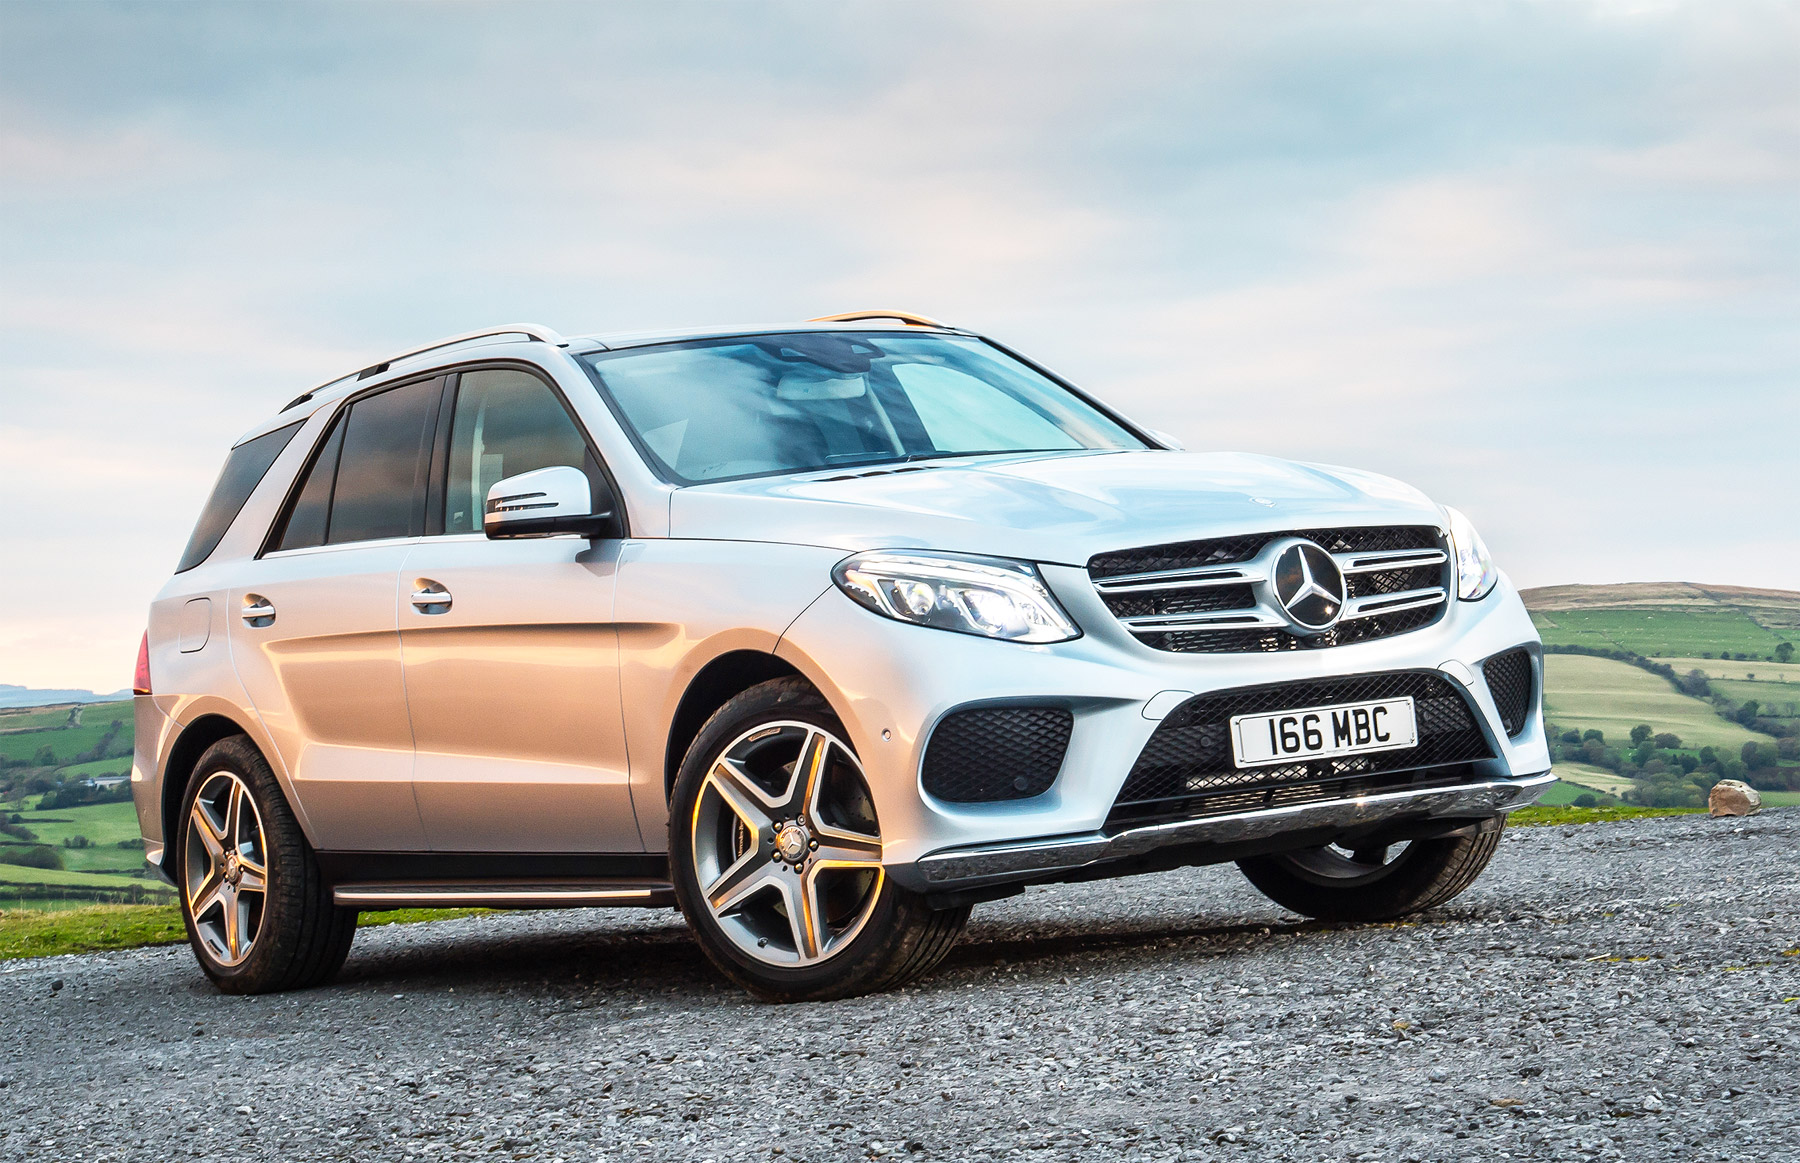 Gle 350d 4matic : mercedes benz gle 350d suv 4matic amg line road test ~ Accommodationitalianriviera.info Avis de Voitures